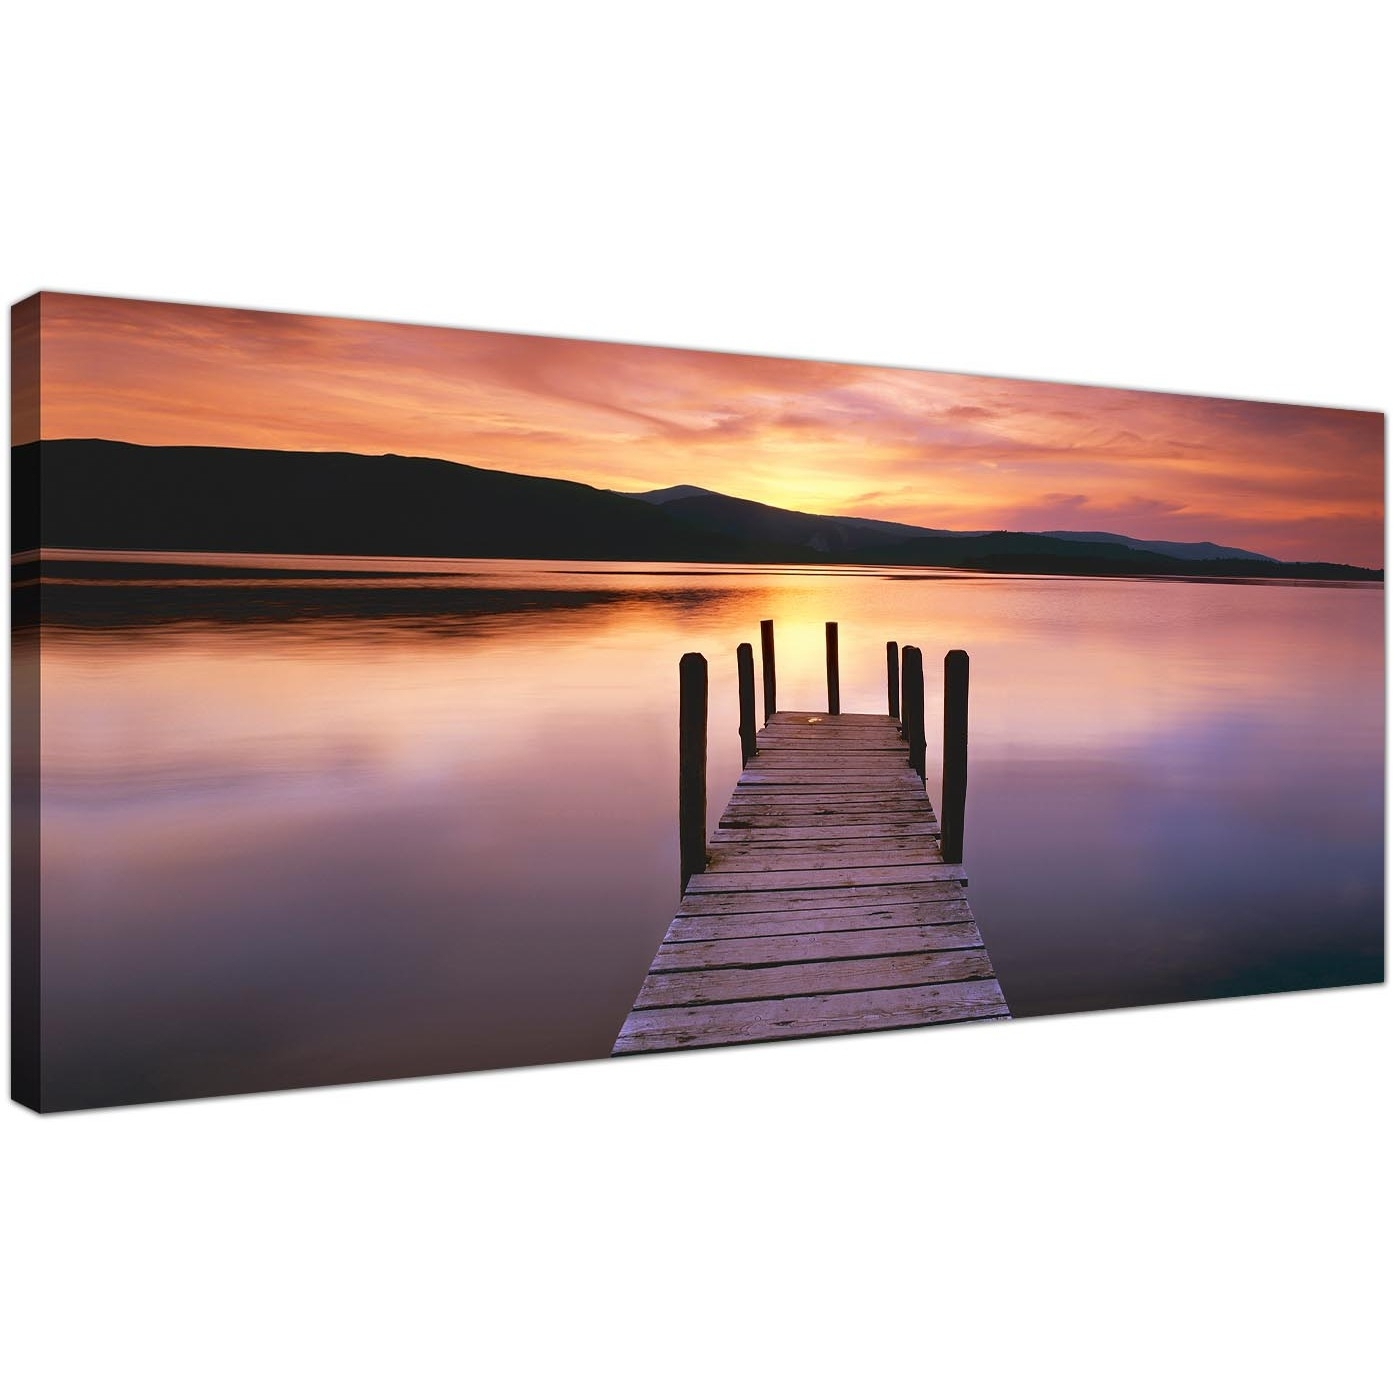 Wide Canvas Wall Art Of A Lake Sunset For Your Living Room Regarding Best And Newest Panoramic Canvas Wall Art (View 15 of 15)